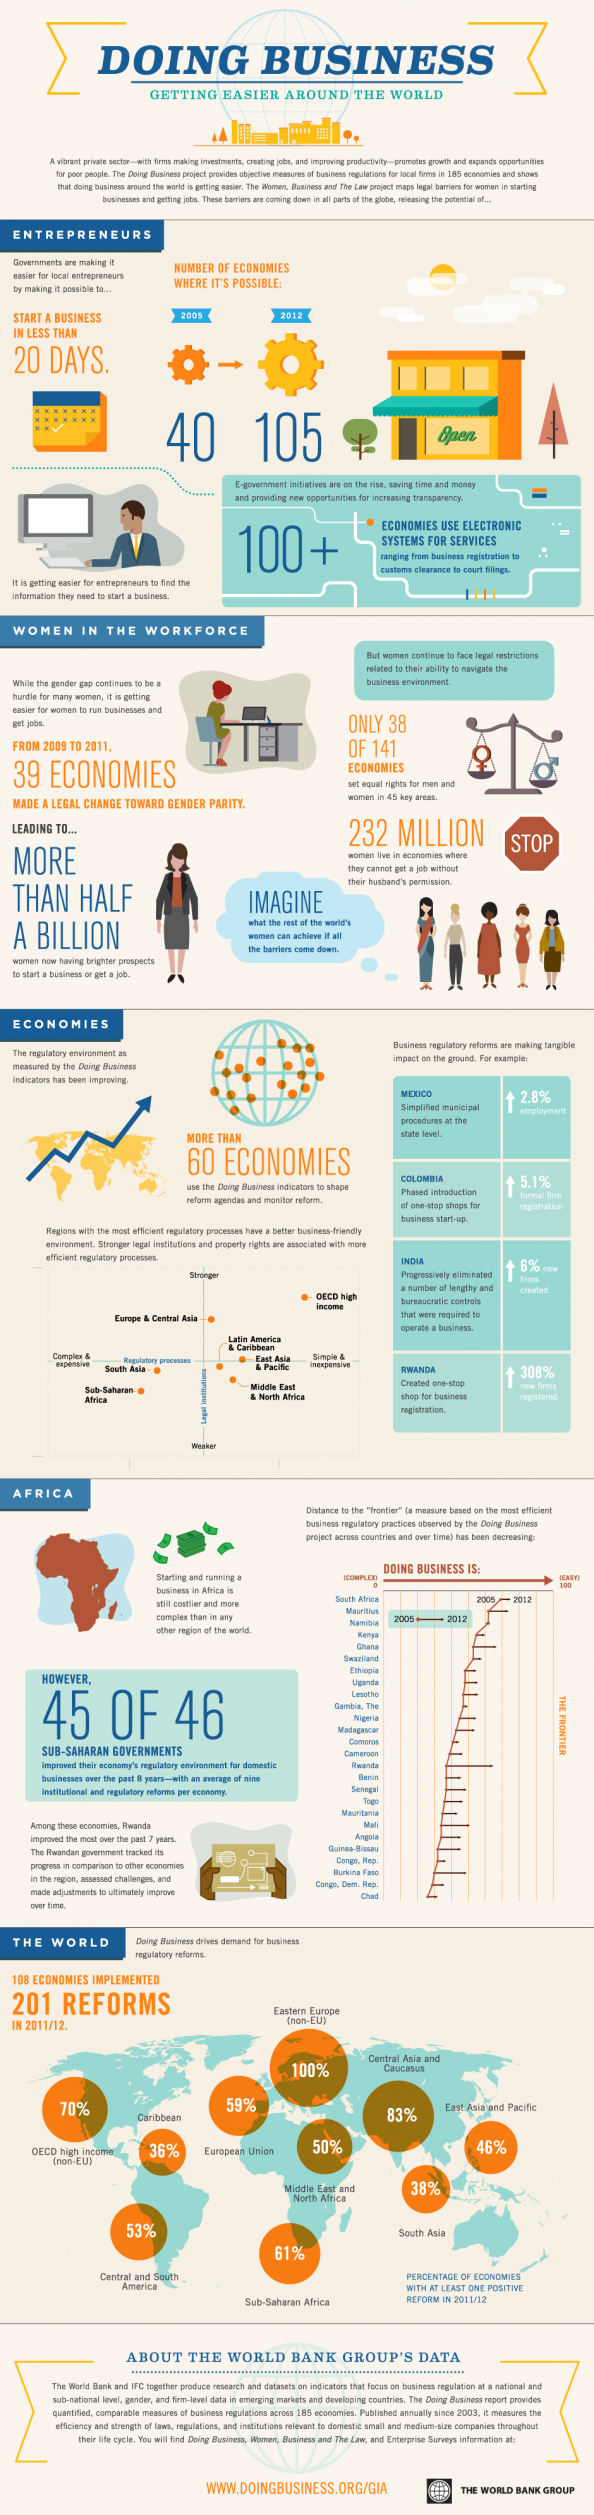 Doing Business - Getting Easier Around the World Infographic